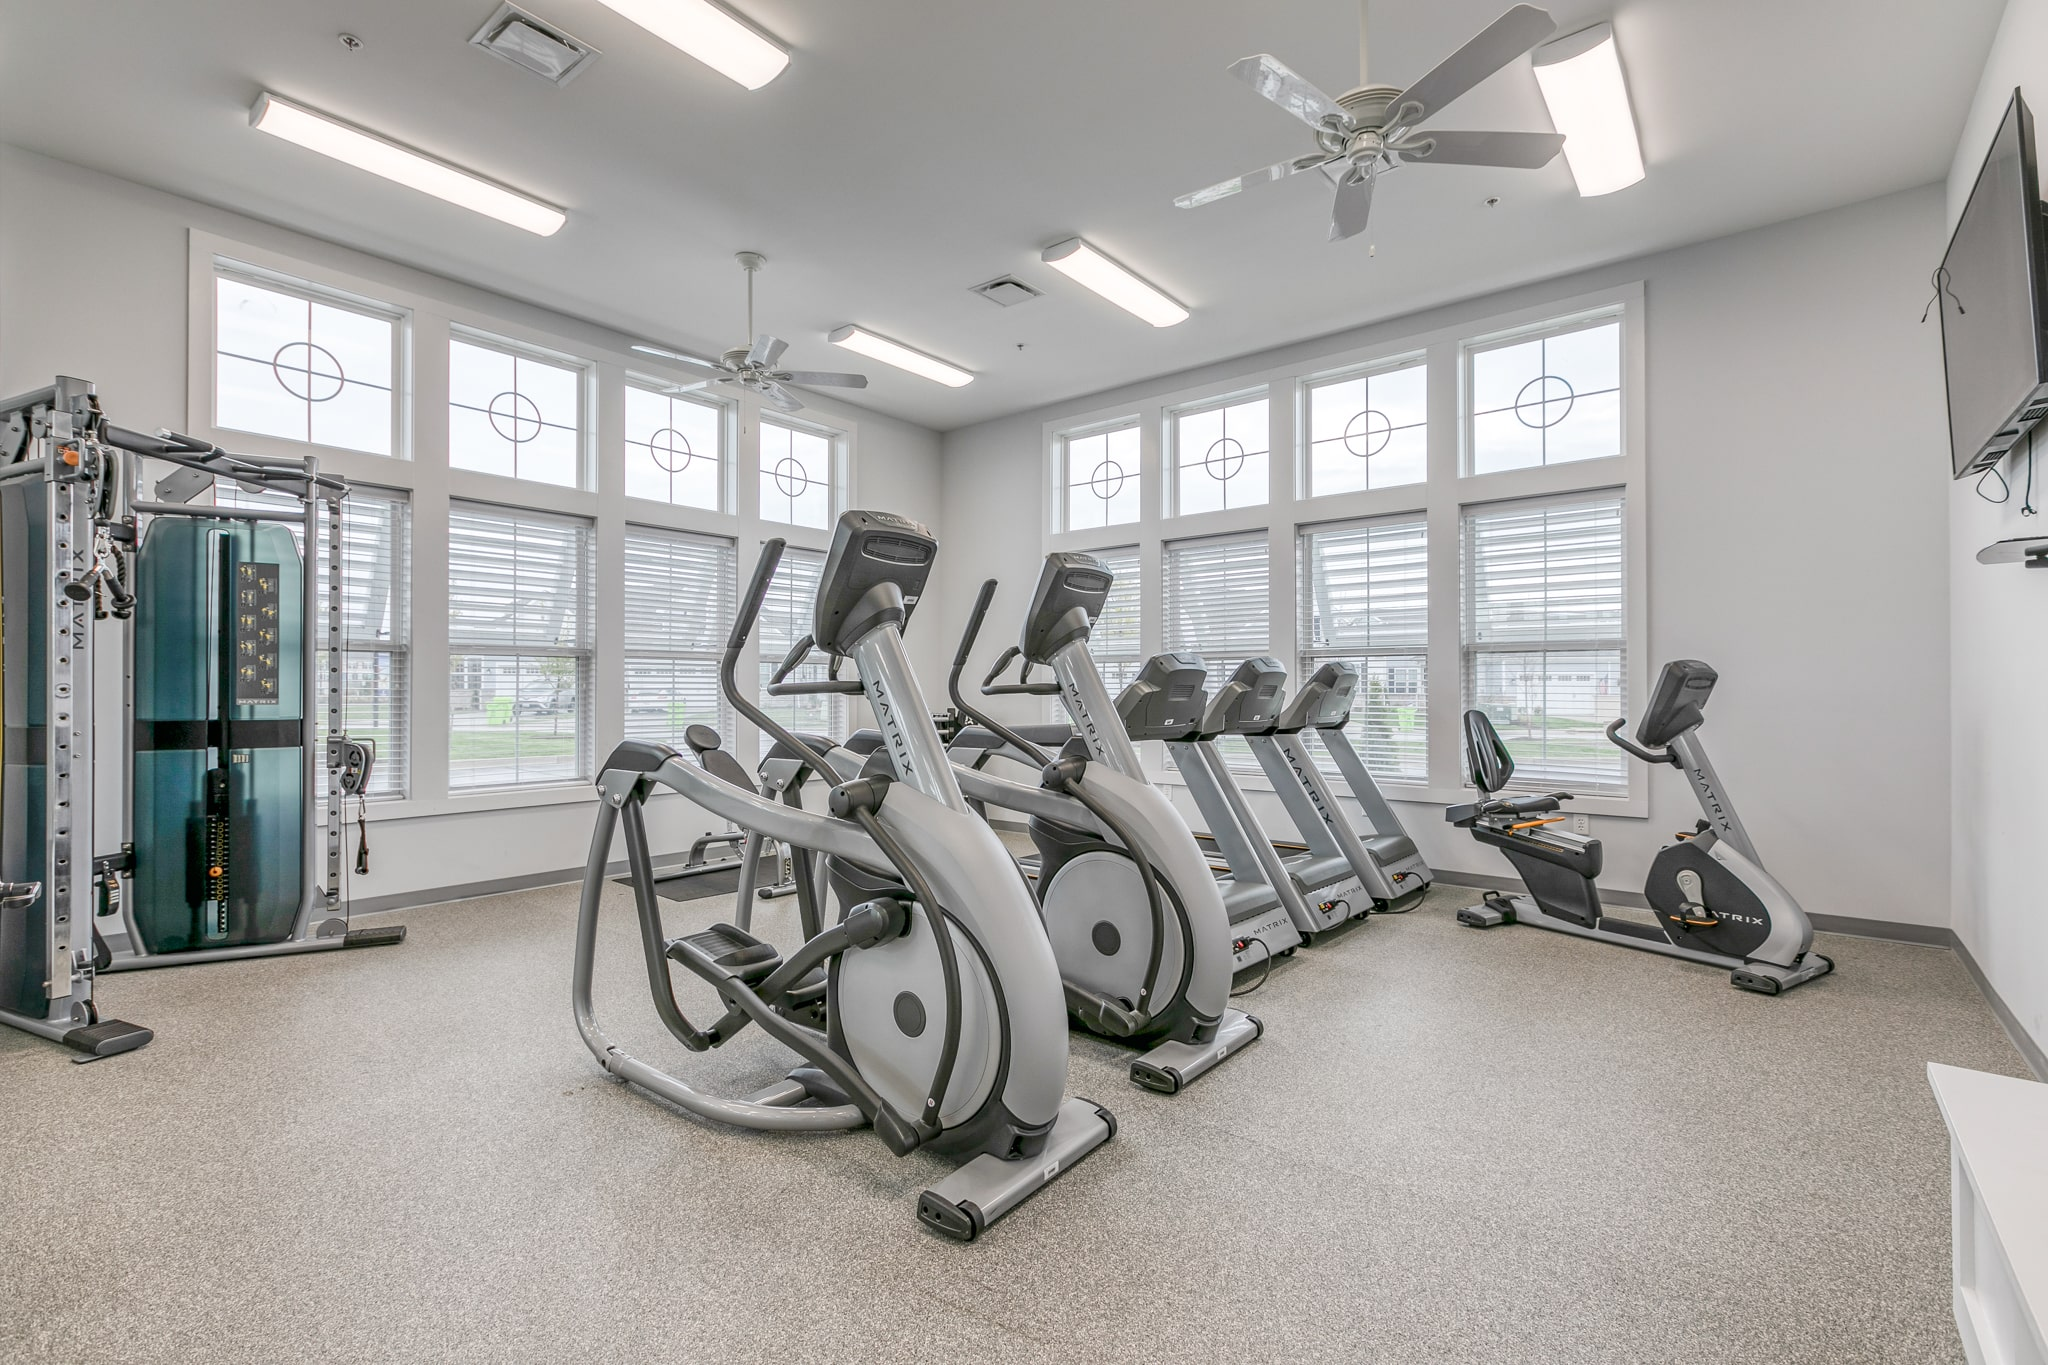 Image of the fitness center inside the Bay Bride Cove Community